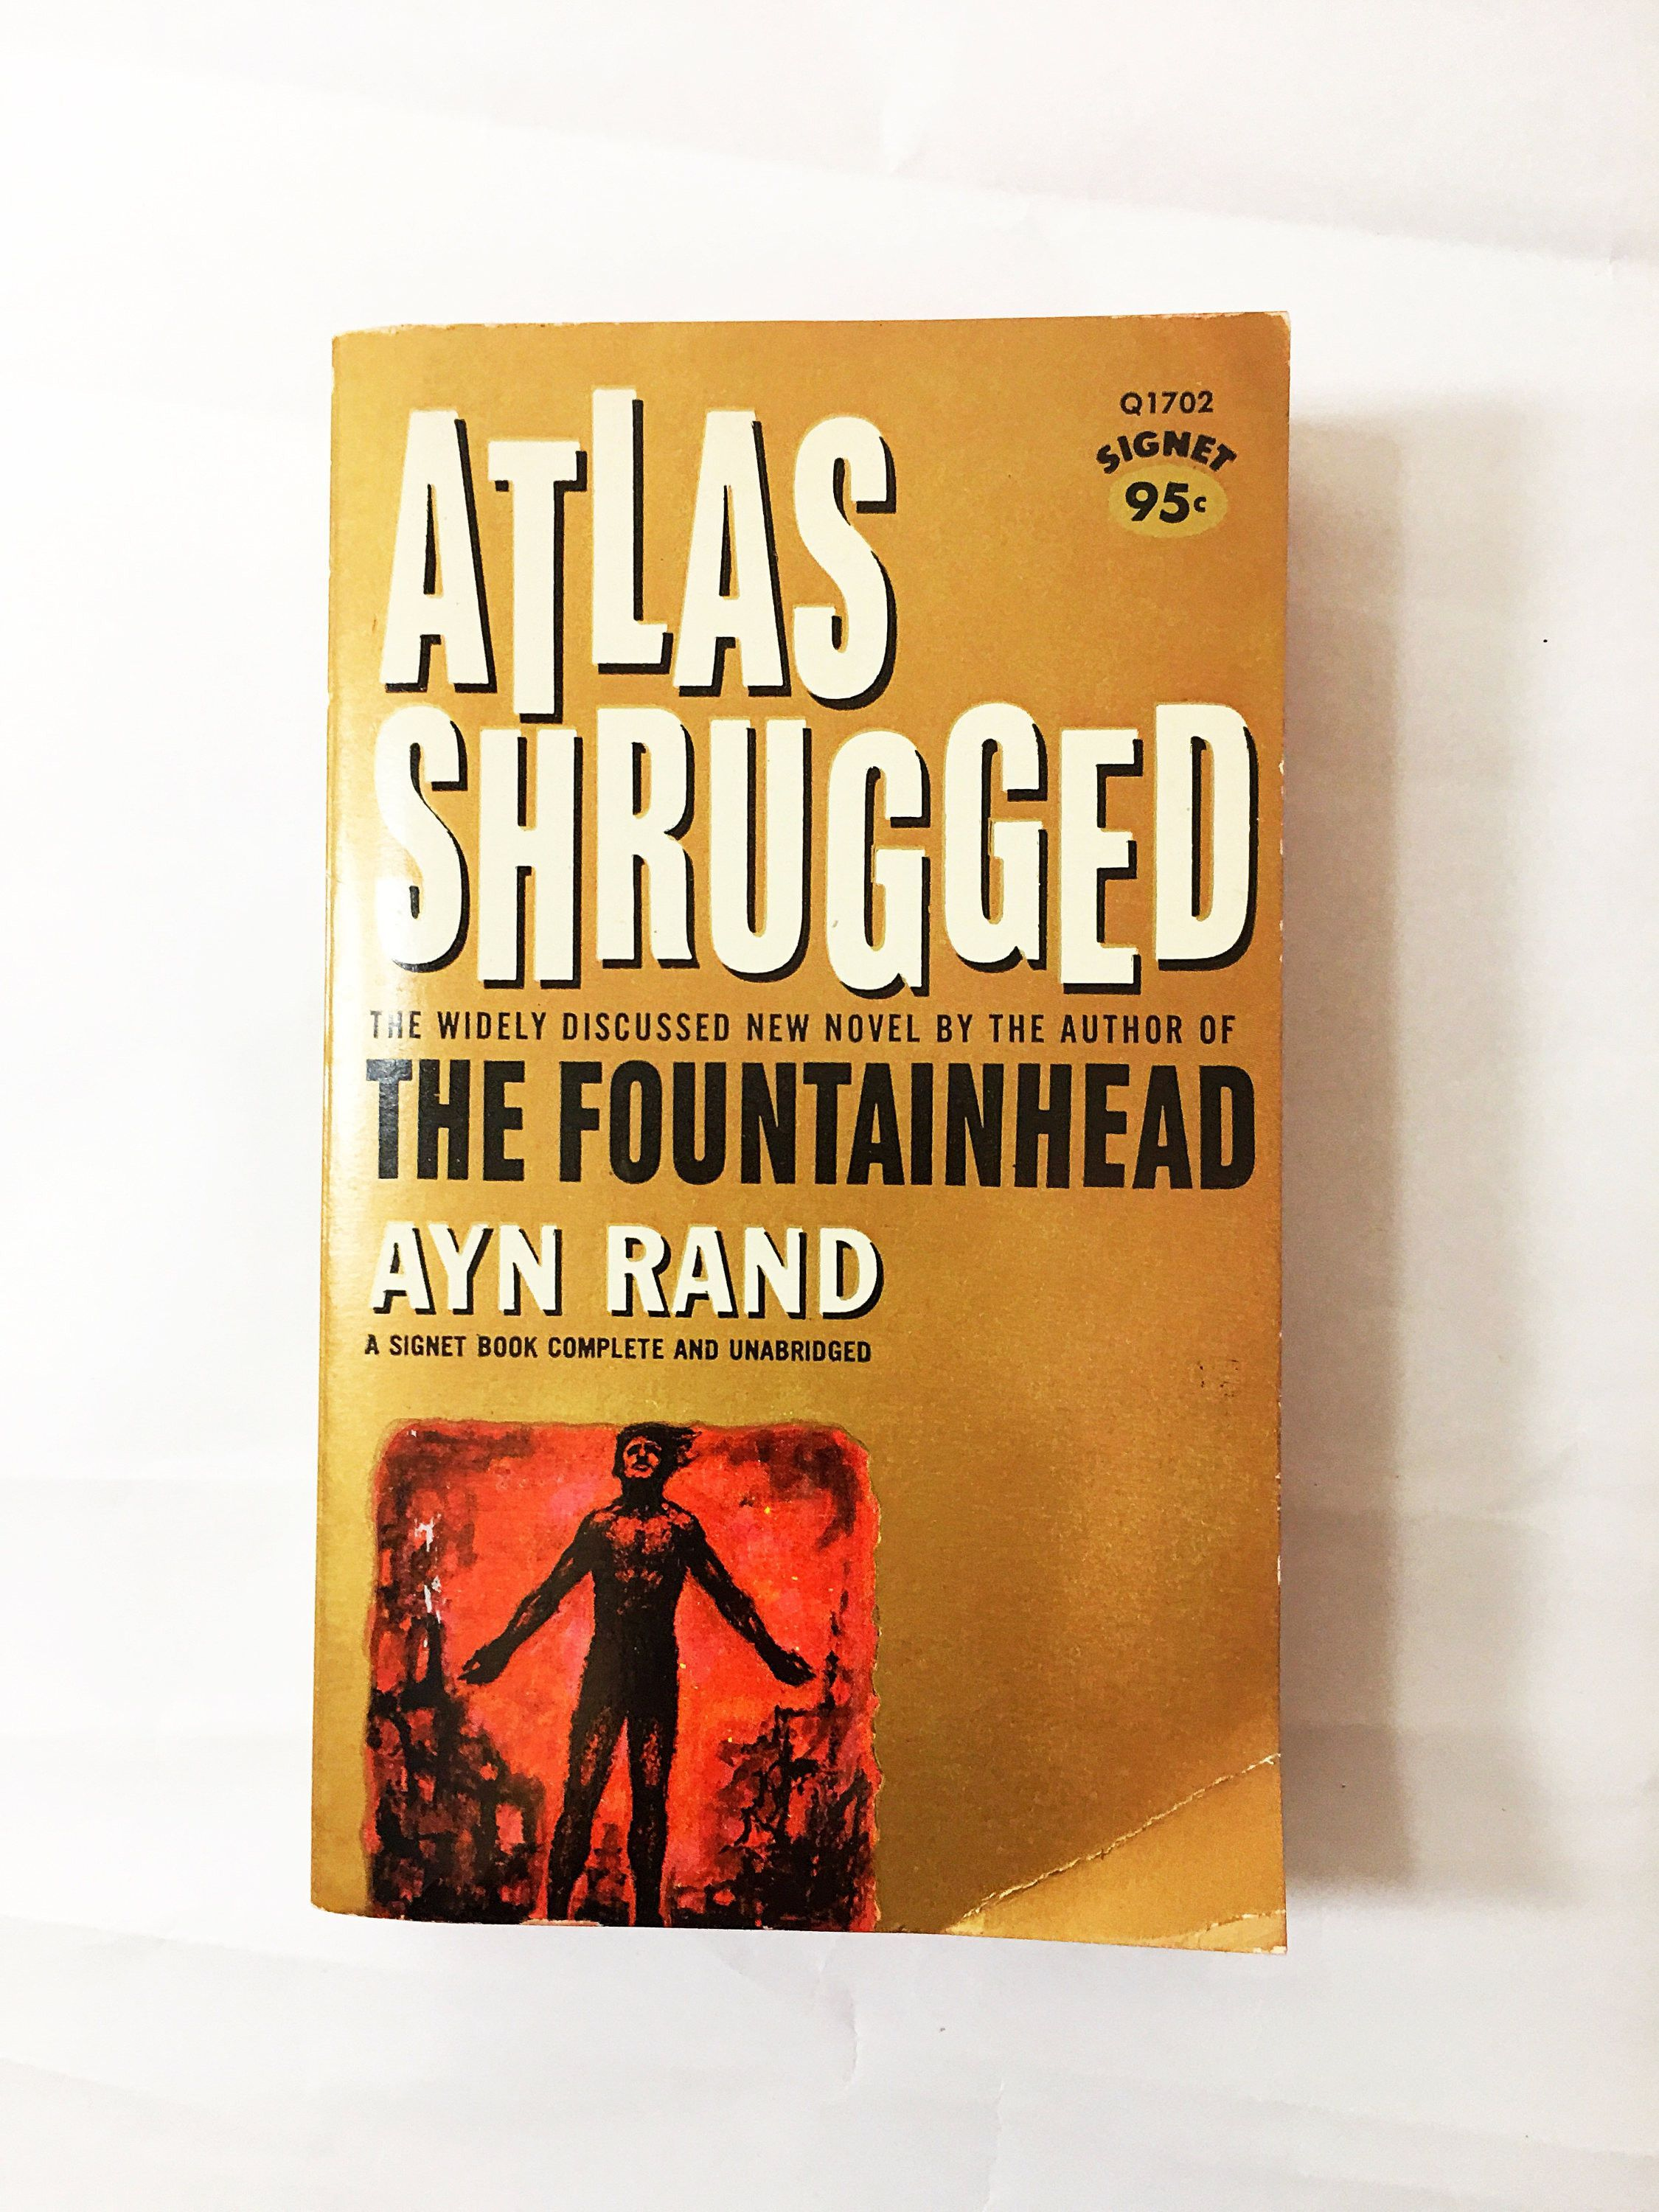 Atlas Shrugged book by Ayn Rand. Vintage Paperback circa 1964. Dedicated to Nathaniel Branden. Who is John Galt? Roots of Objectivism!